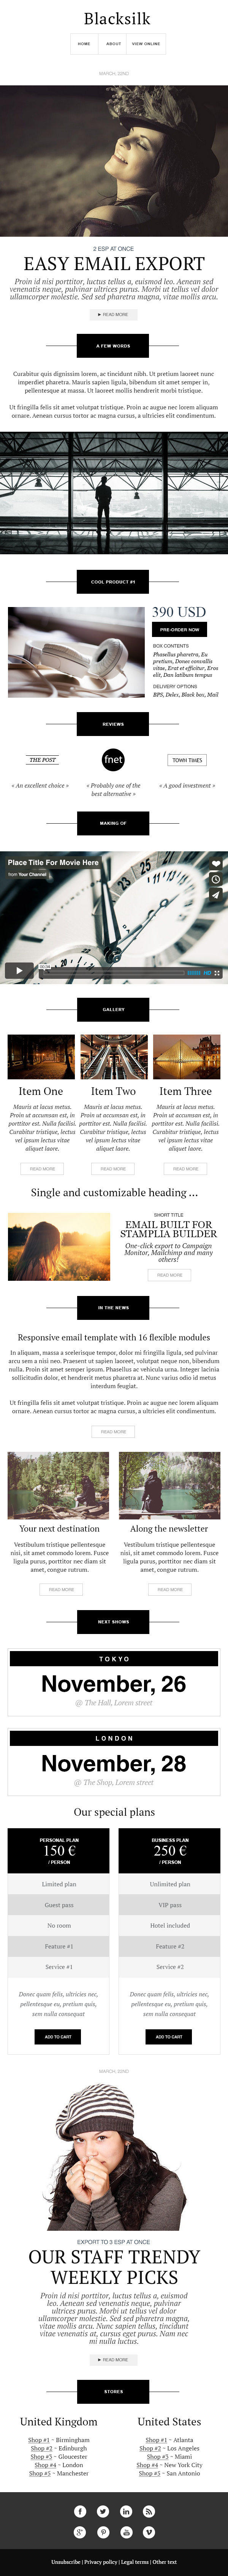 Blacksilk Stamplia Builder  Sales  Email Templates Marketplace